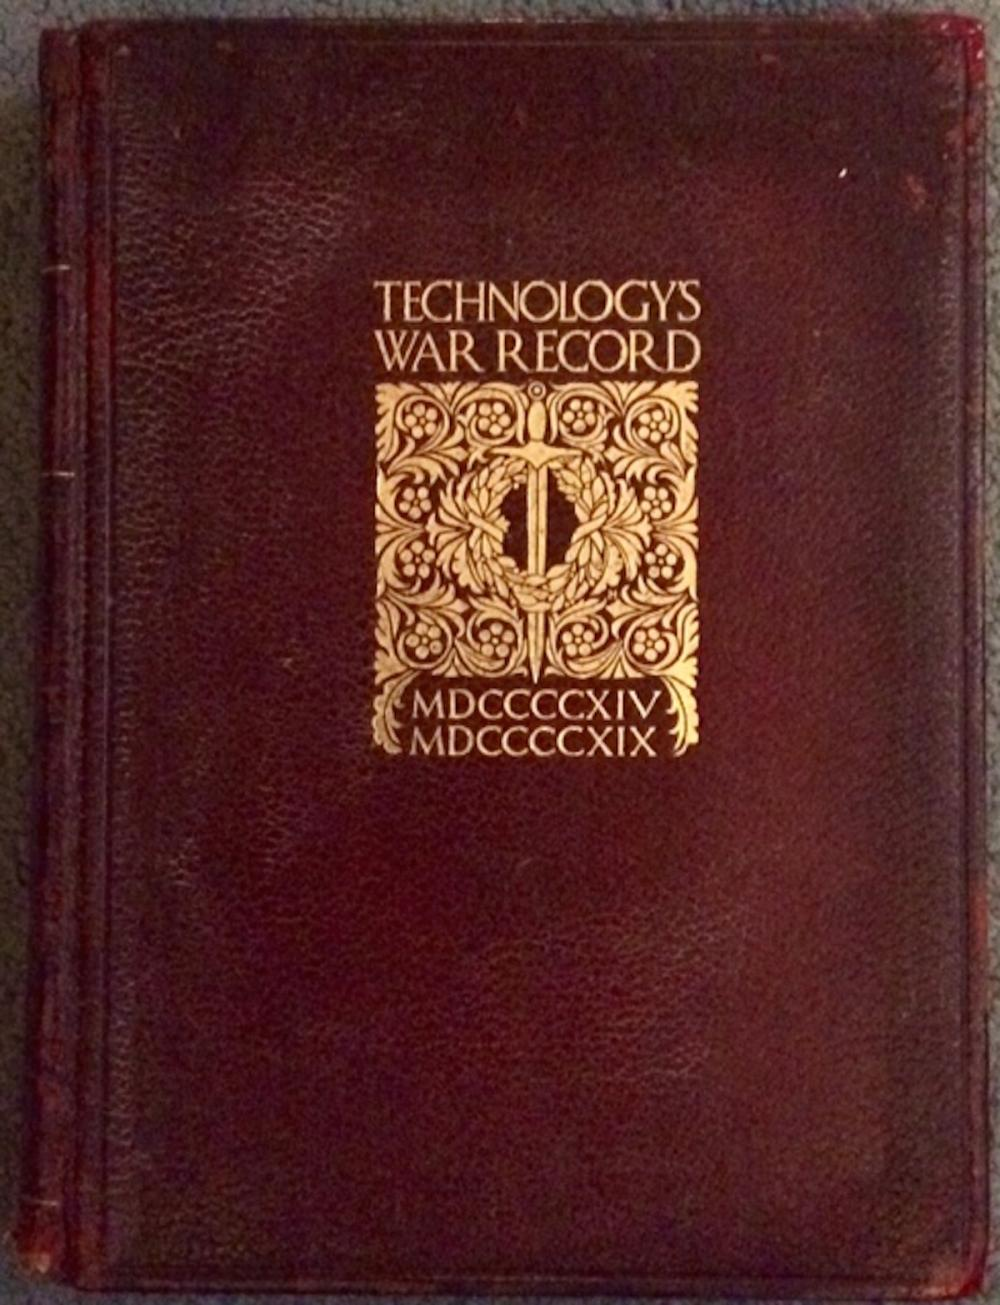 """Technology's War Record"" by Massachusetts Institute Of Technology ANTIQUE 1920 Leather Hardcover M.I.T.'s WWI Contributions 1st Edition 1st Printing"